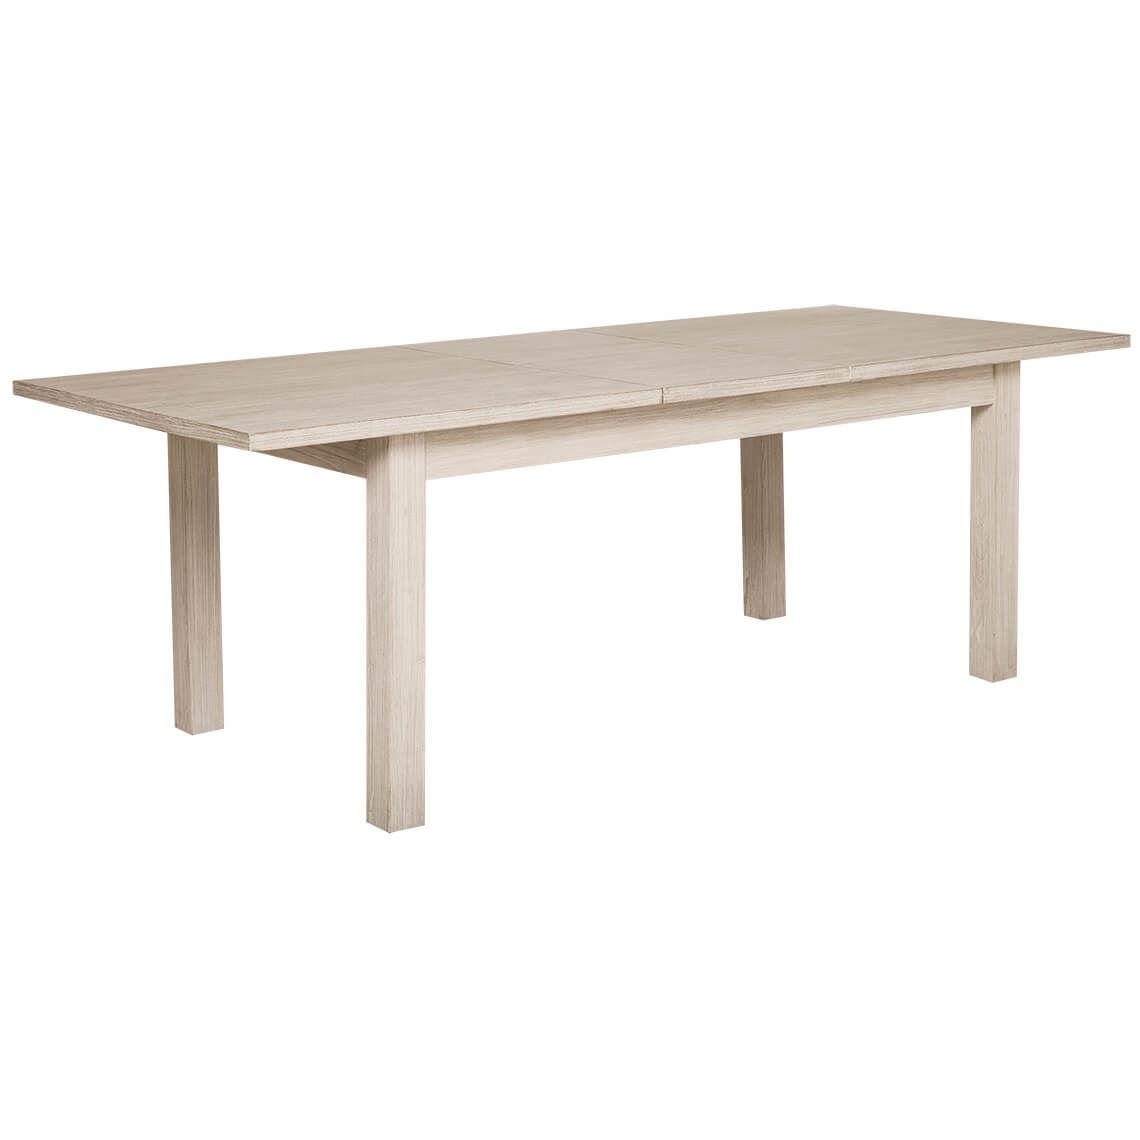 Cancun 200/250X100Cm Extension Dining Table, White Wash Intended For Most Recent Reed Extending Dining Tables (View 20 of 25)